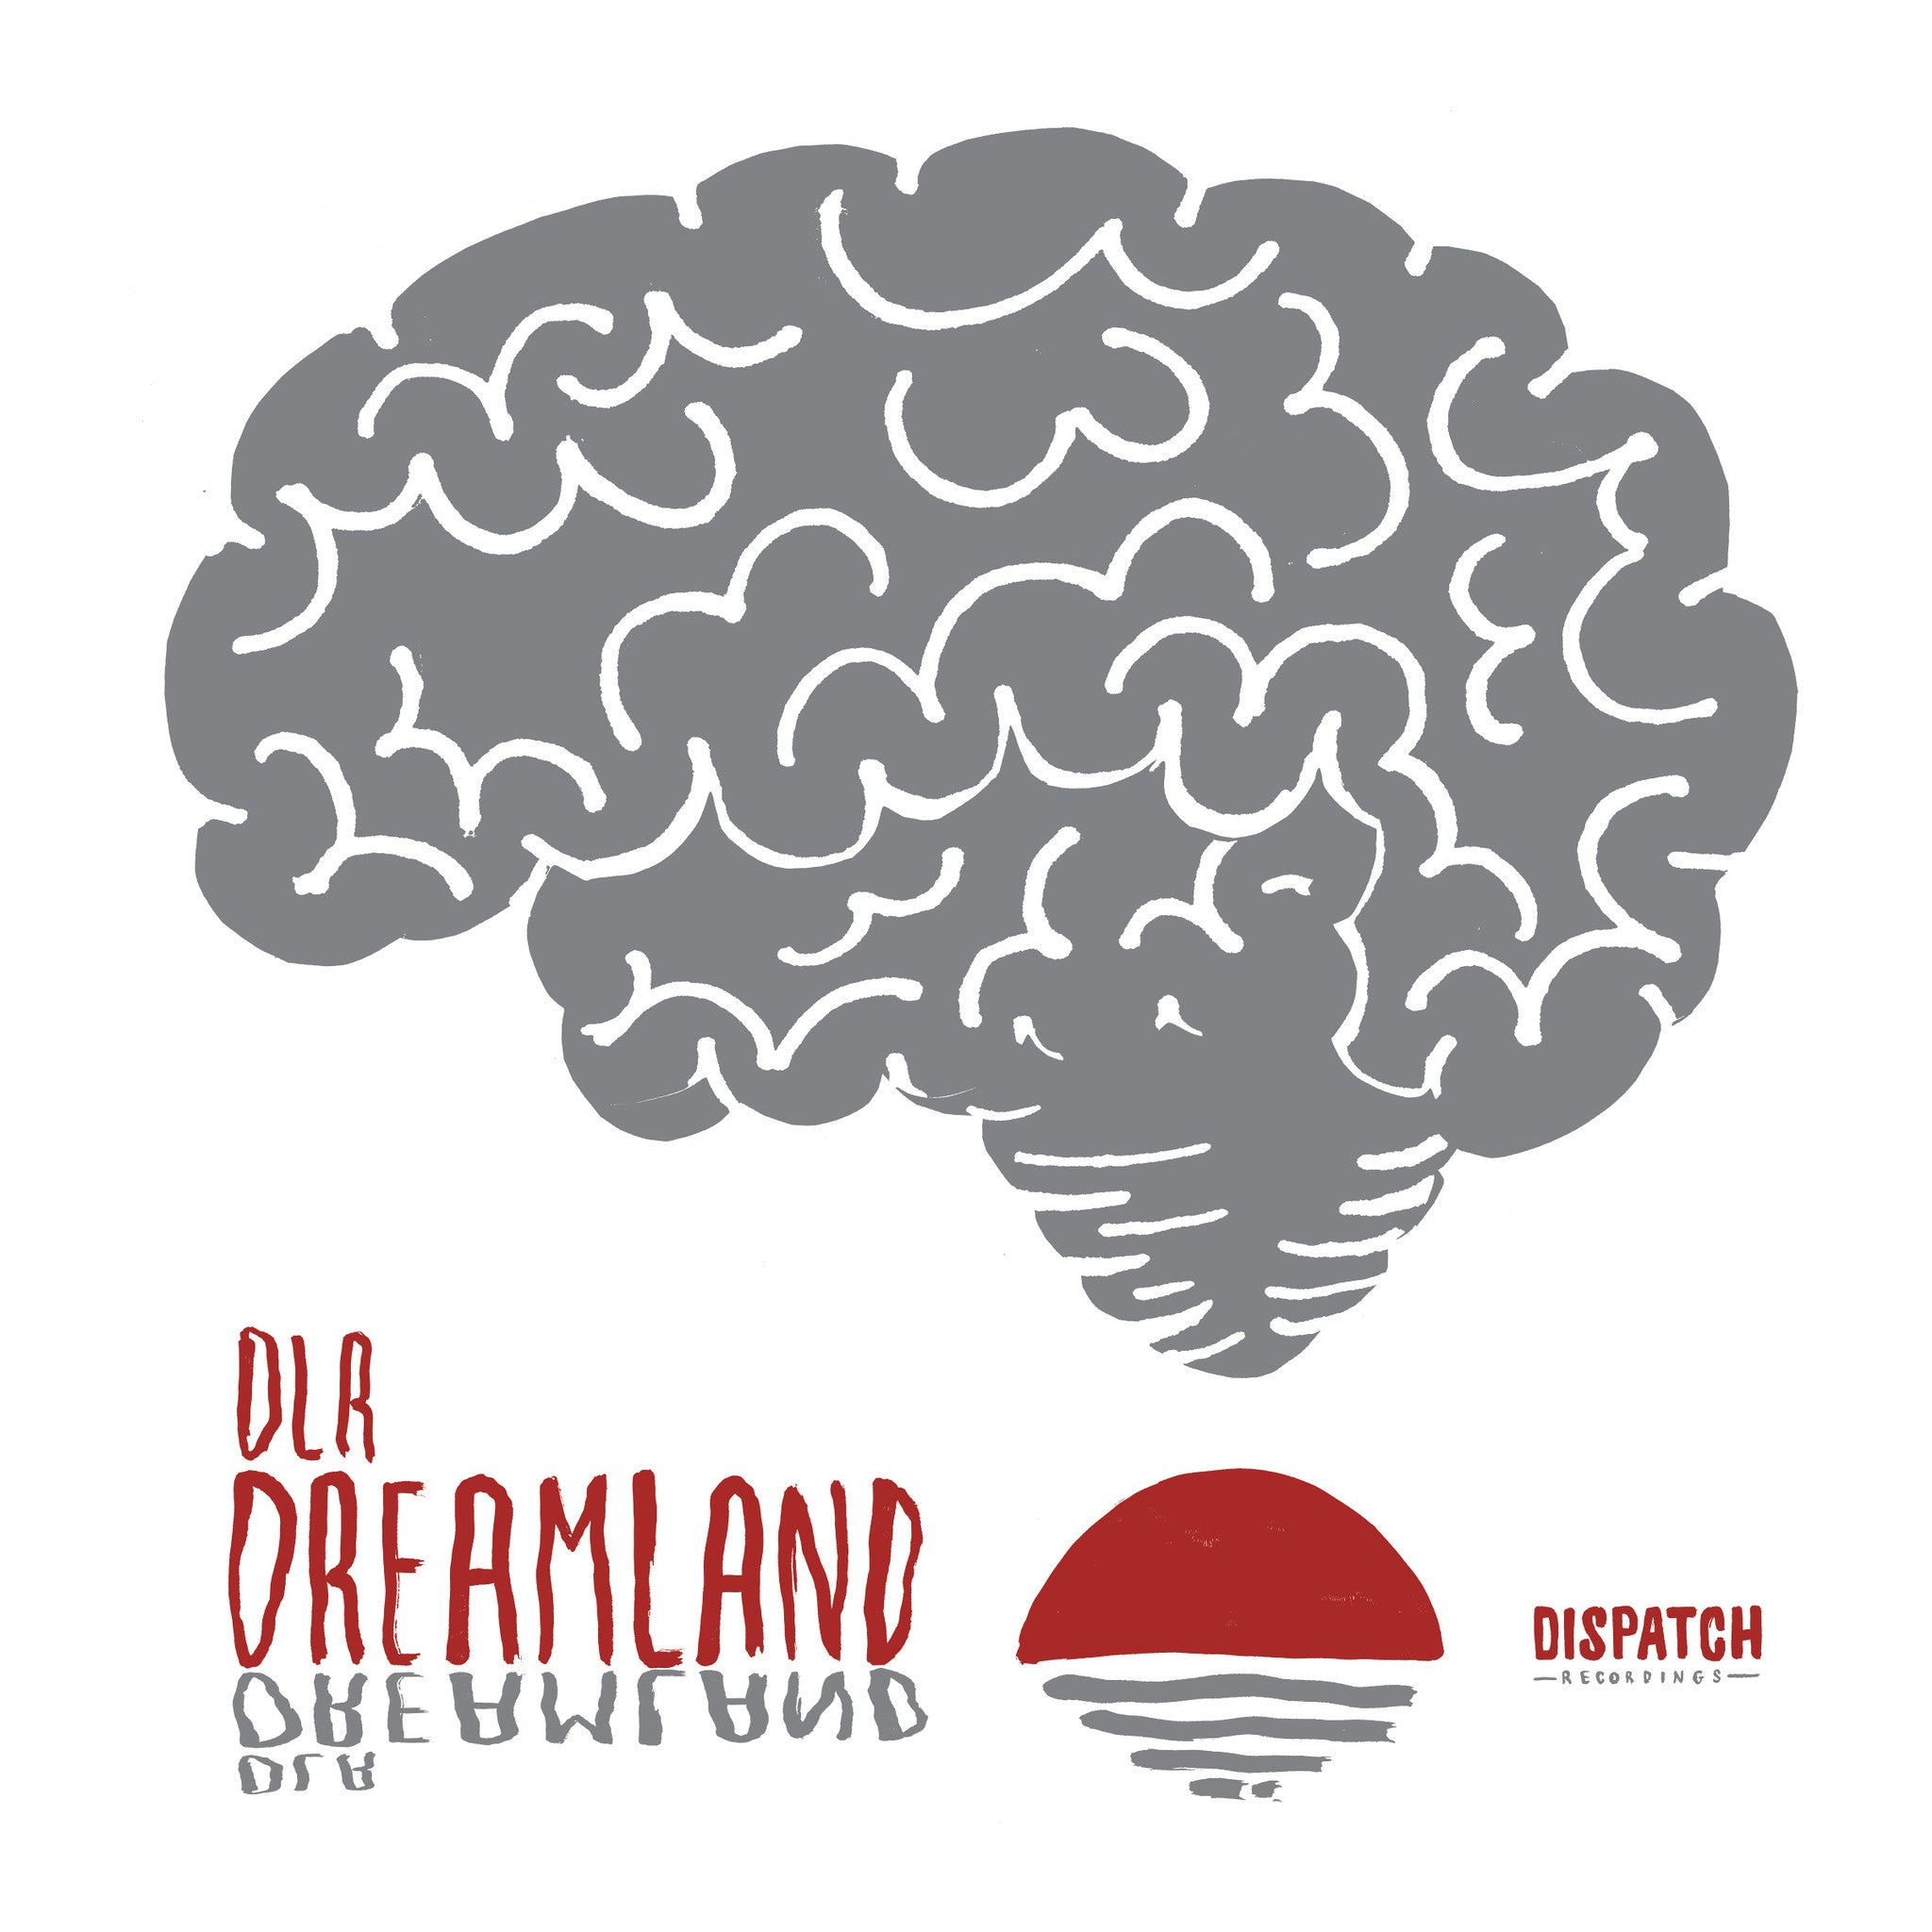 "DLR - Dreamland [2x12"" Vinyl] , Vinyl - Dispatch recordings, Unearthed Sounds"